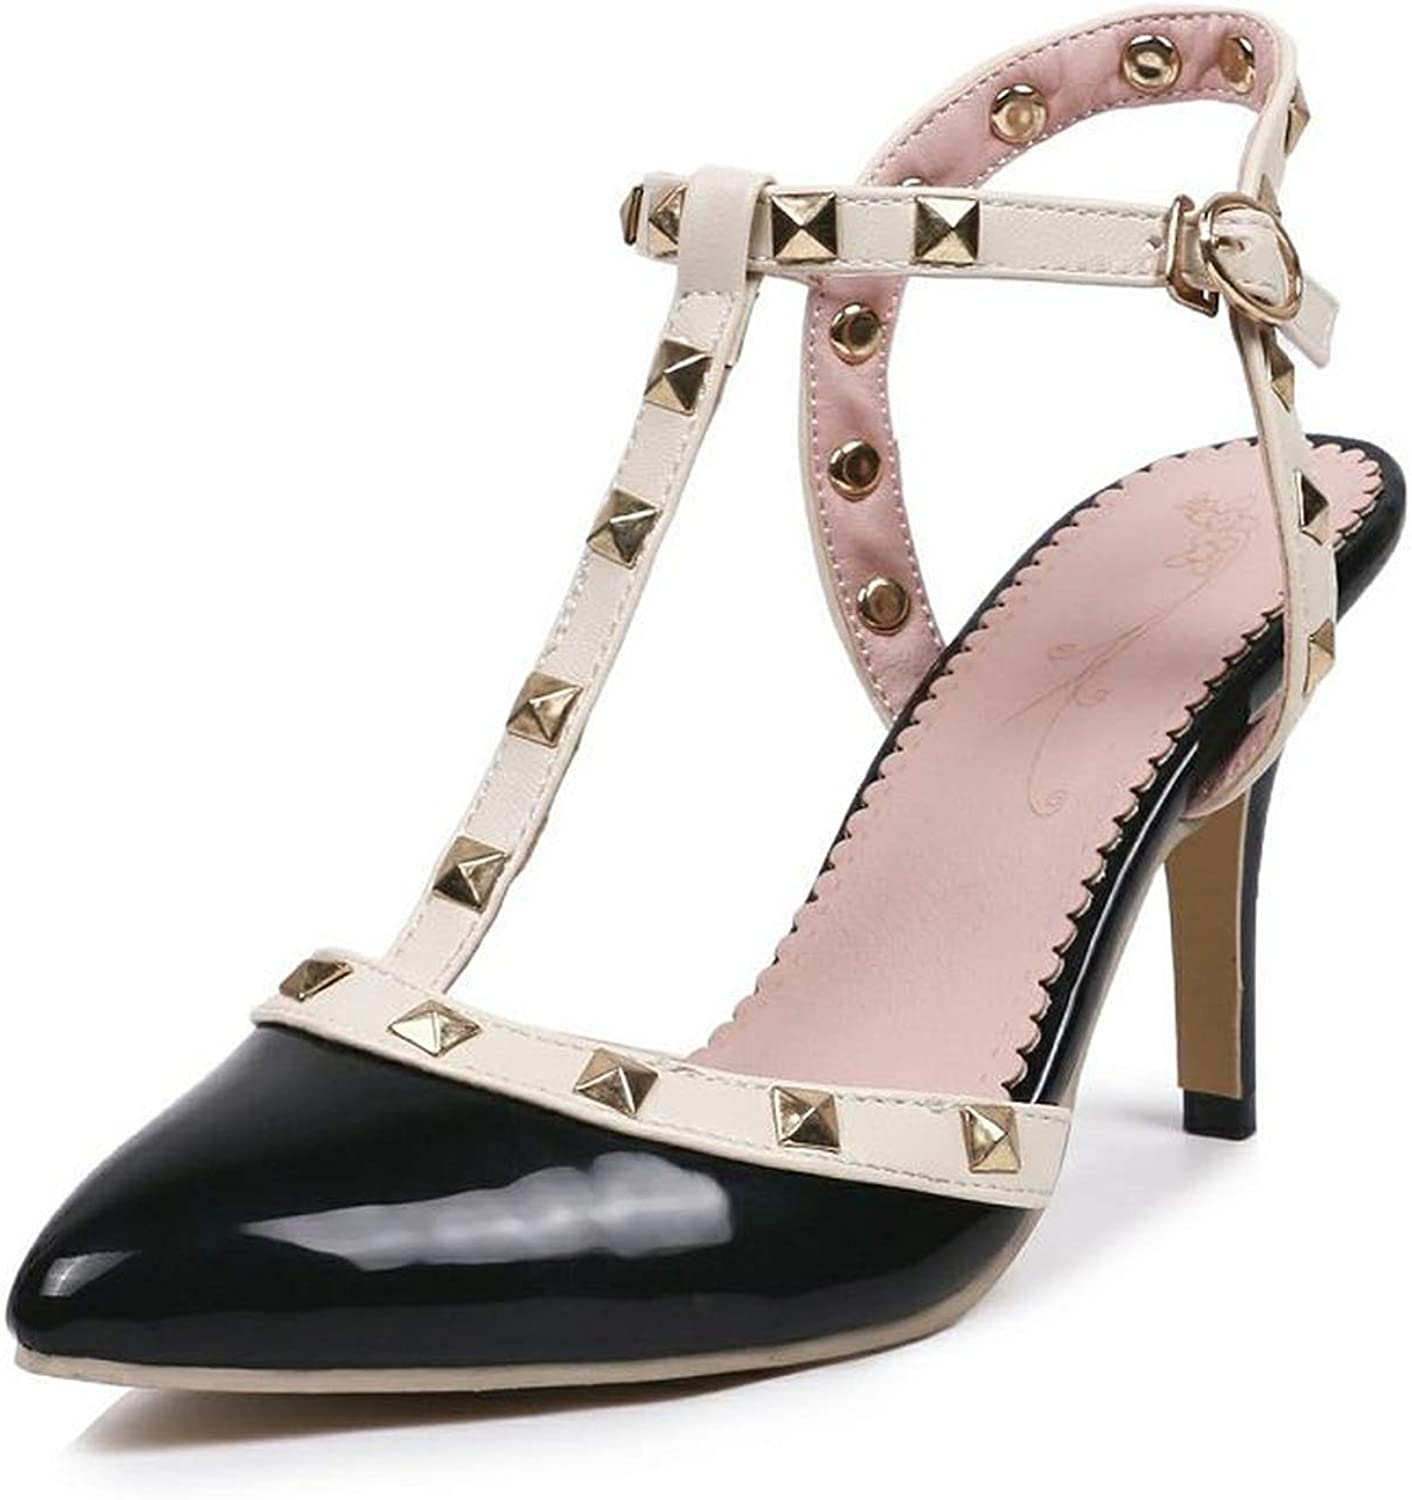 QianQianStore Size 32-43 Ladies Sandals T Strap Rivets Buckle High Heels Summer shoes Women Sexy Wedding shoes